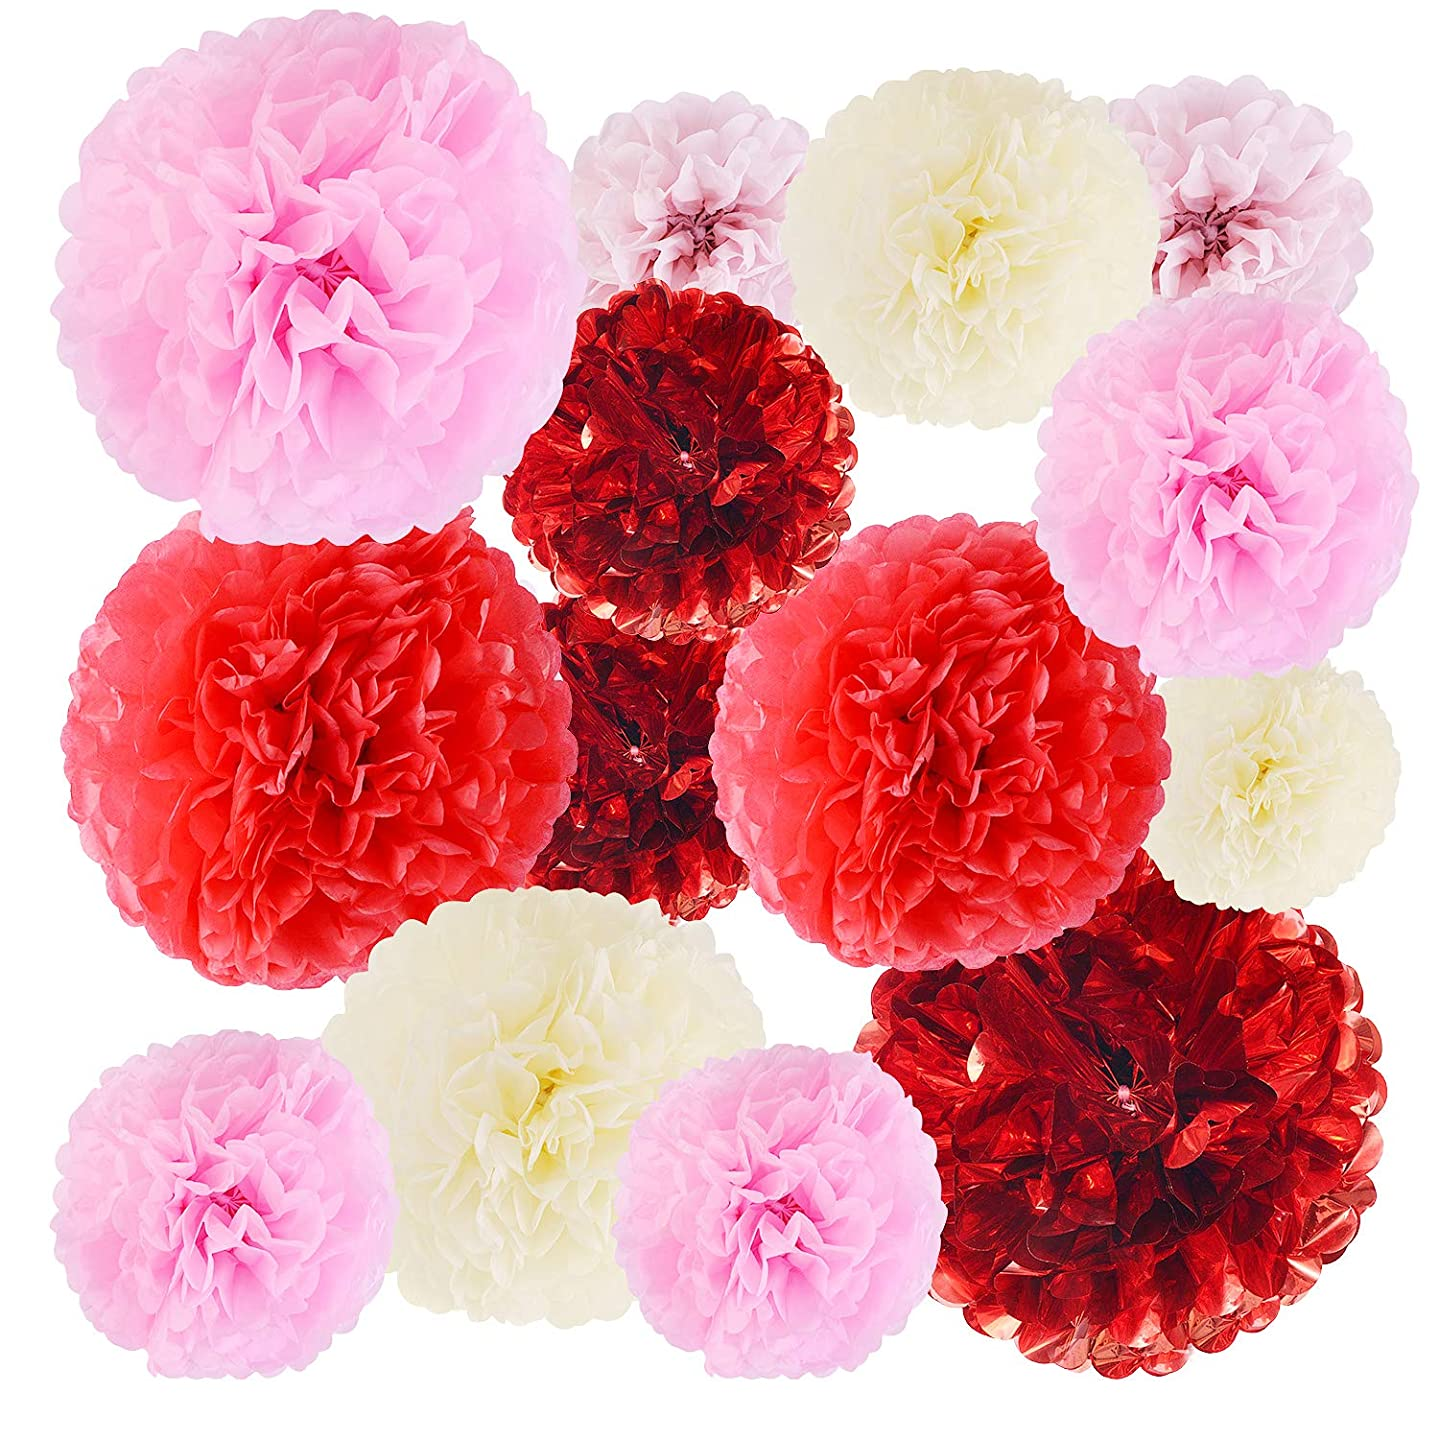 "EKKONG 20pcs Paper Pom Poms, Party Decorations, Red Foil, Paper Flowers - Baby Shower - Birthday Party - Wedding - Bridal Shower - Outdoor Party Decoration - 6"", 8"", 10"", 12"" (20pcs)"